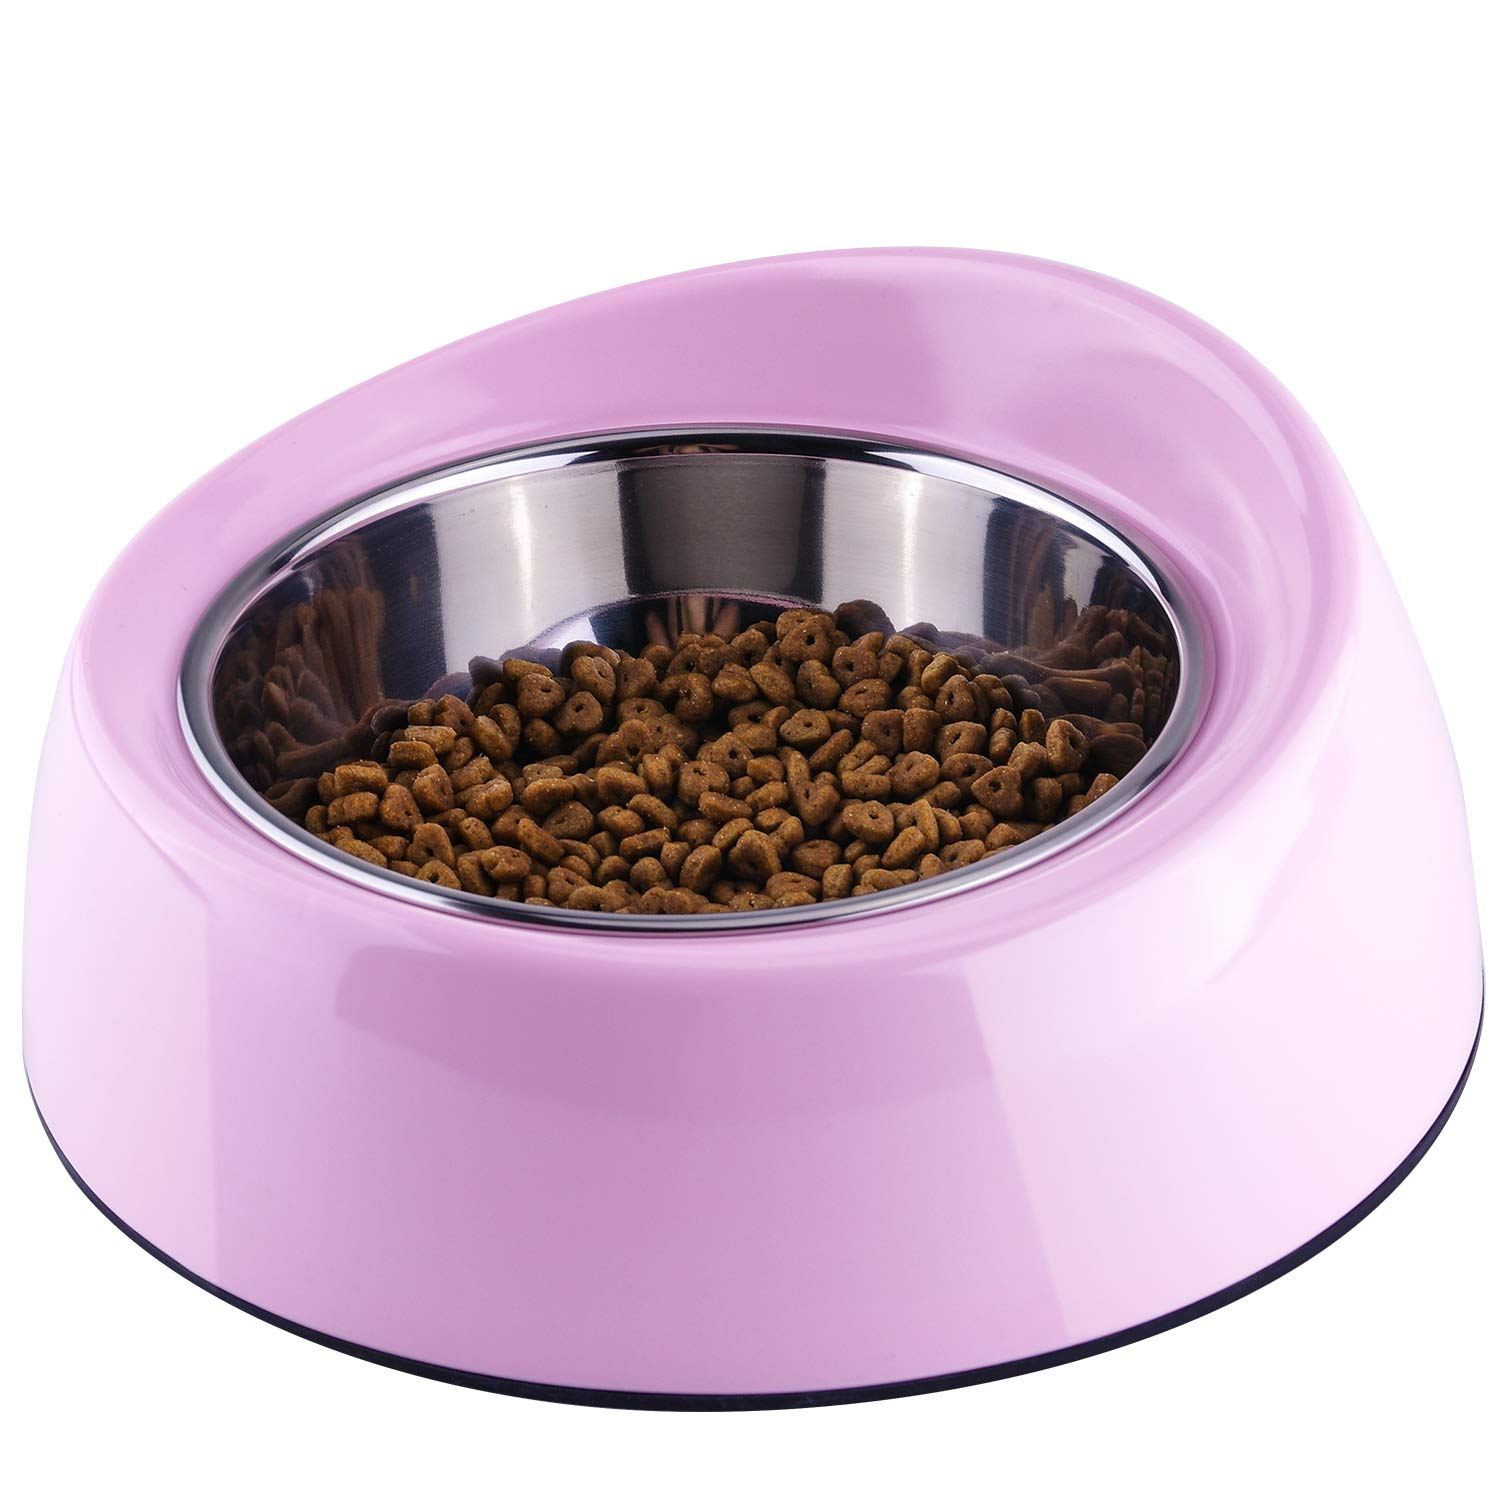 Light Pink 2 Cup Light Pink 2 Cup SuperDesign Removable Stainless Steel Melamine Non-Skid Widthen Mouth Pet Feeding Bowl, for Cats and Brachycephalic Dogs 2 Cup Light Pink